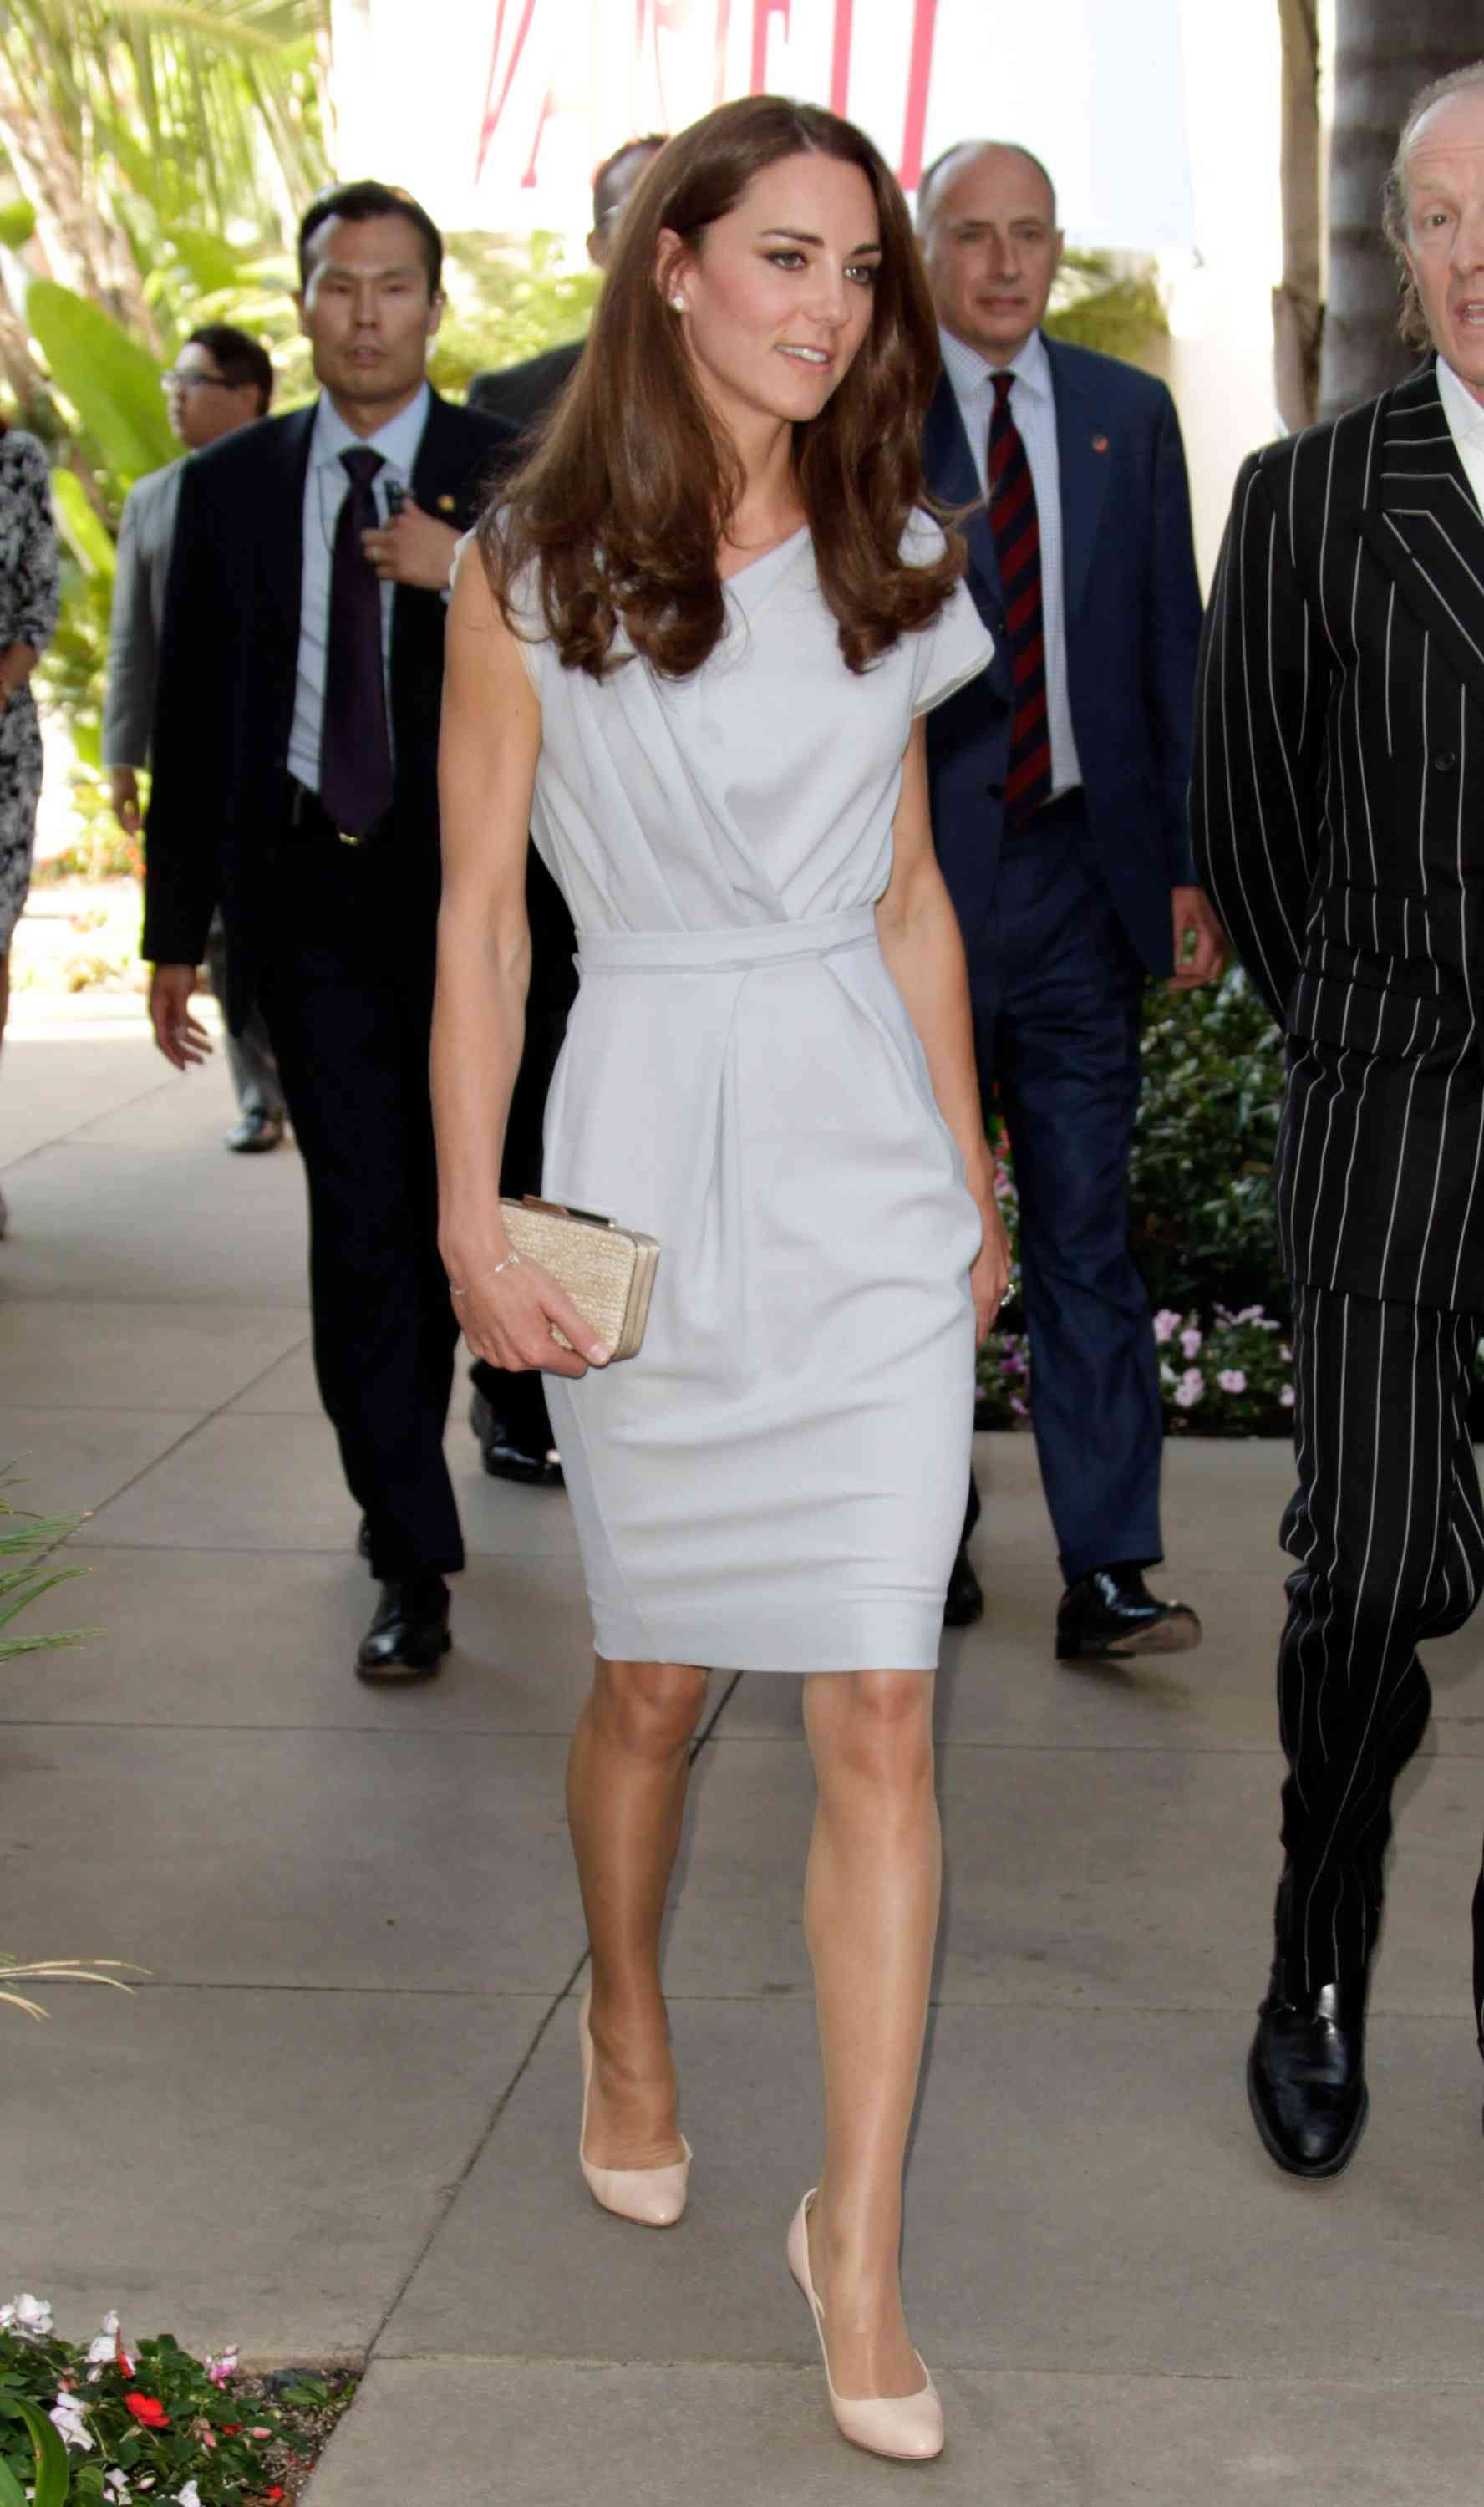 kate middleton fashion style | kate-middleton-fashion-style. I love how she always looks so put together and effortless at the same time.